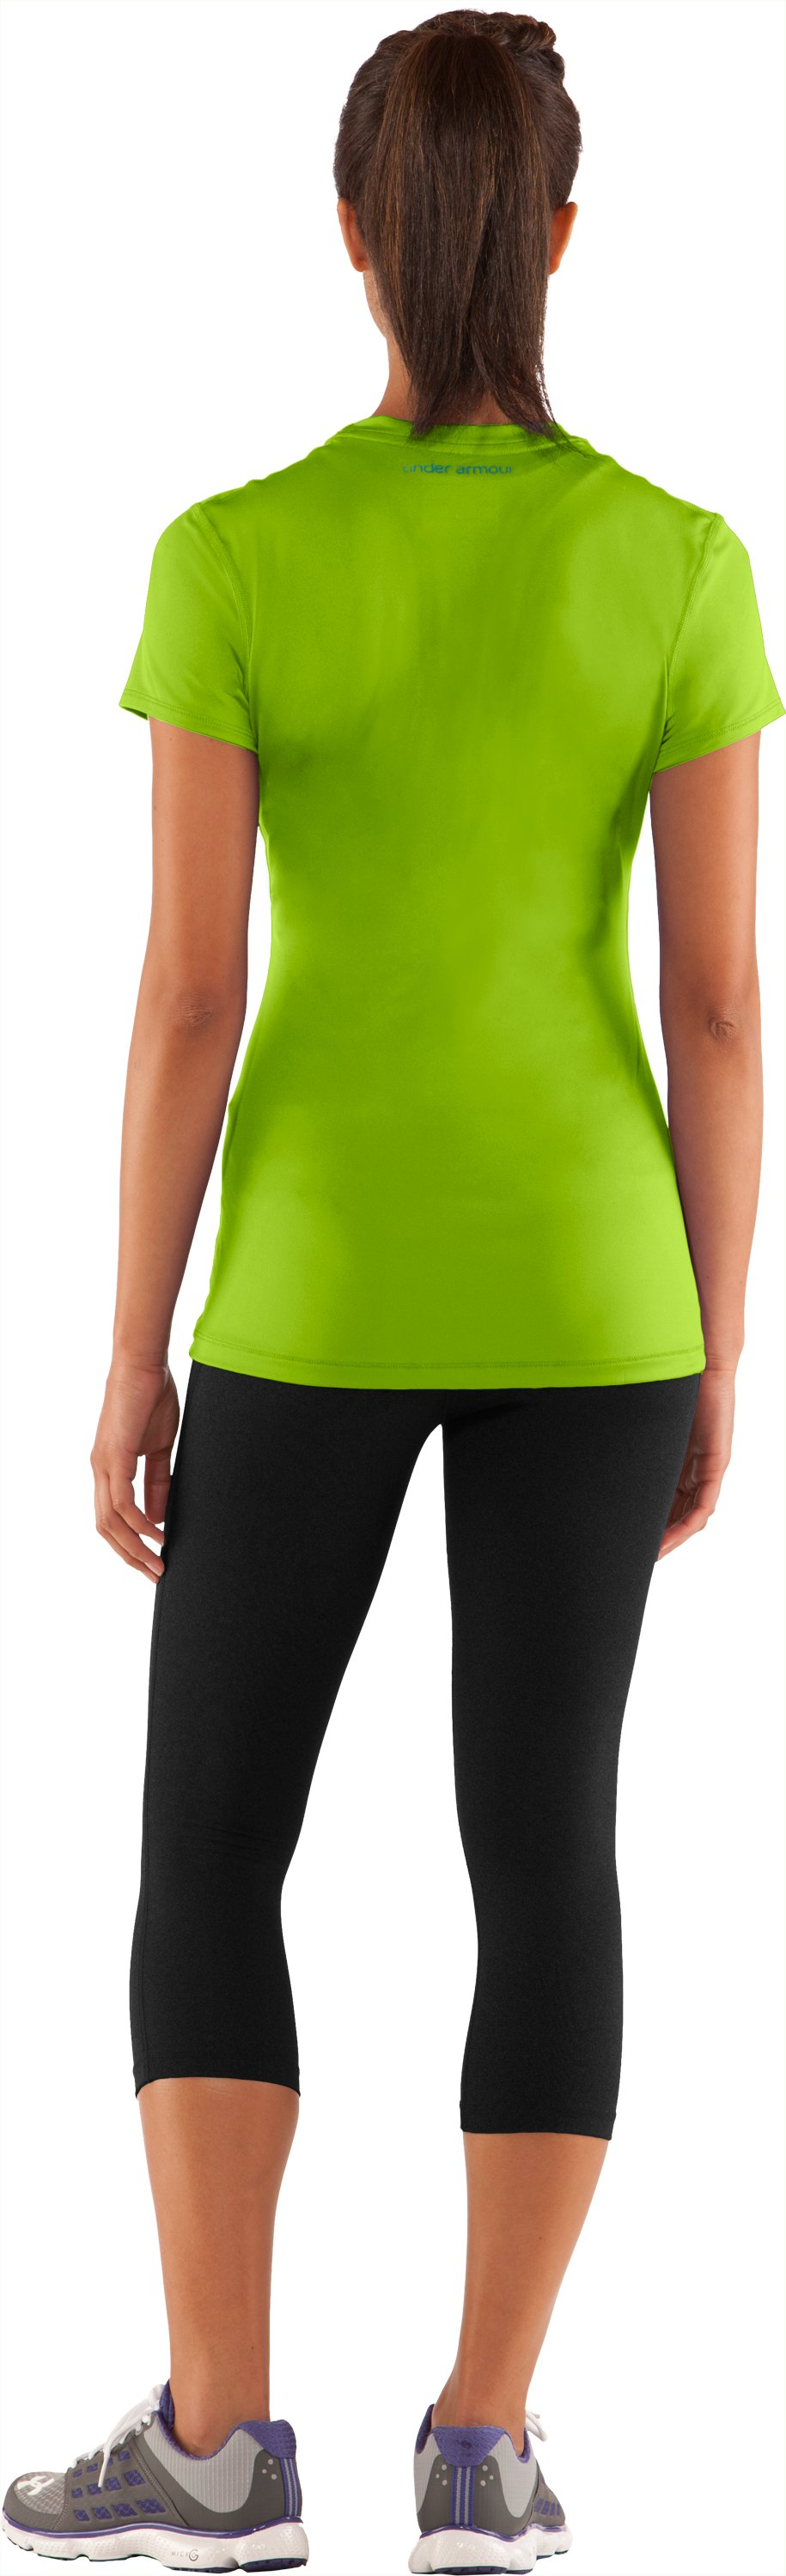 Women's HeatGear® Sonic Short Sleeve, Fusion, Back